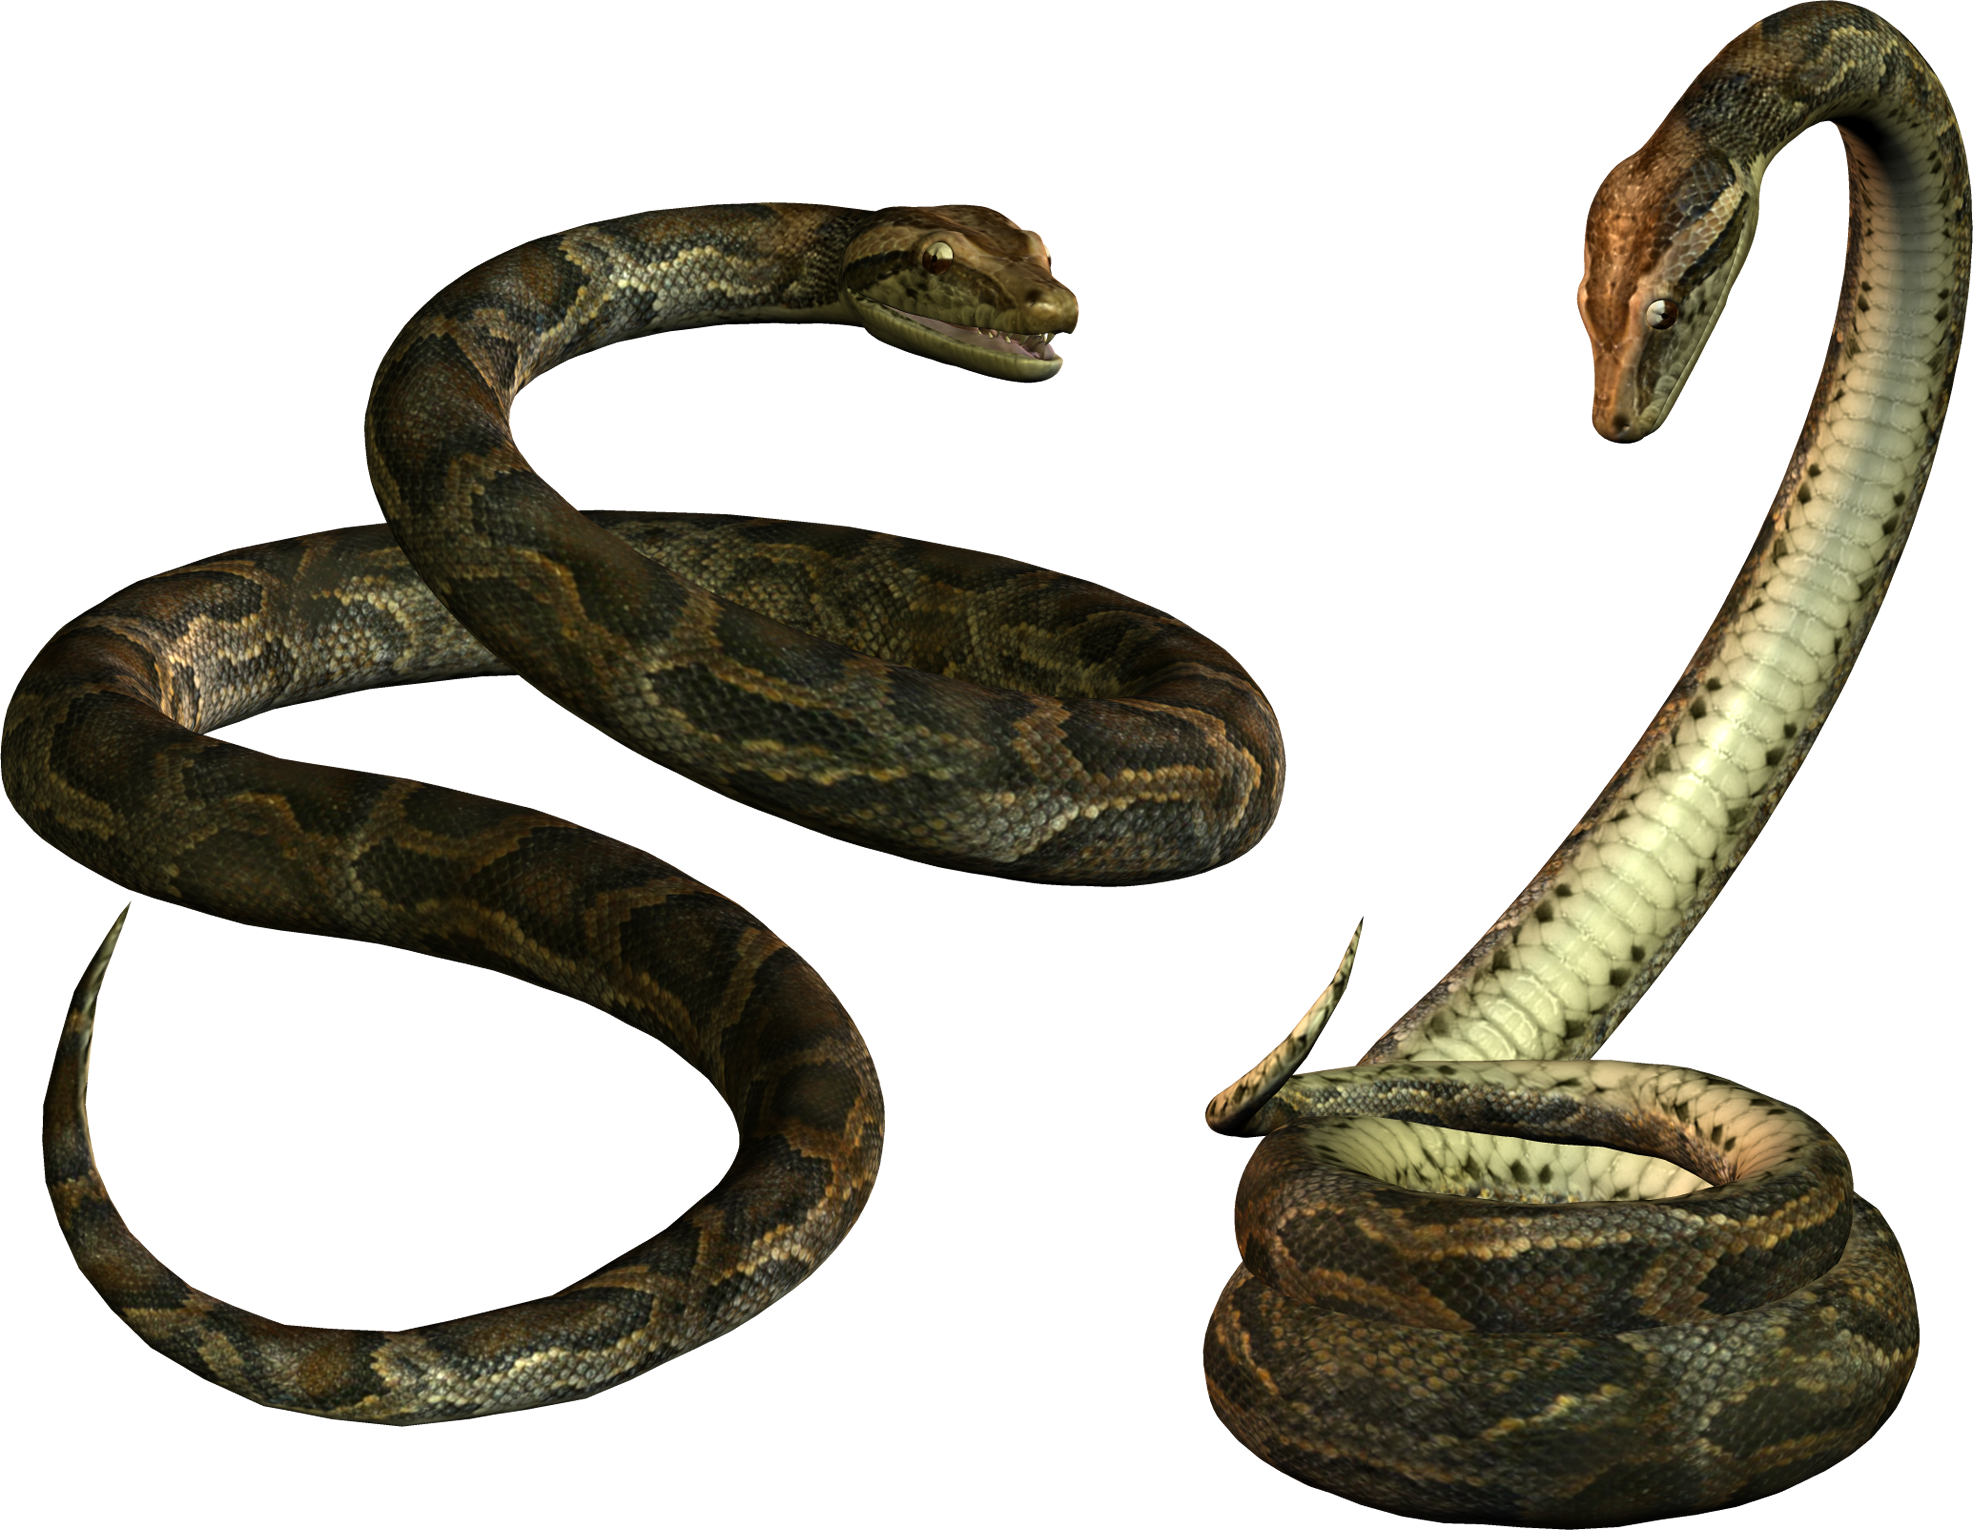 snake png image picture download free reptil pinterest